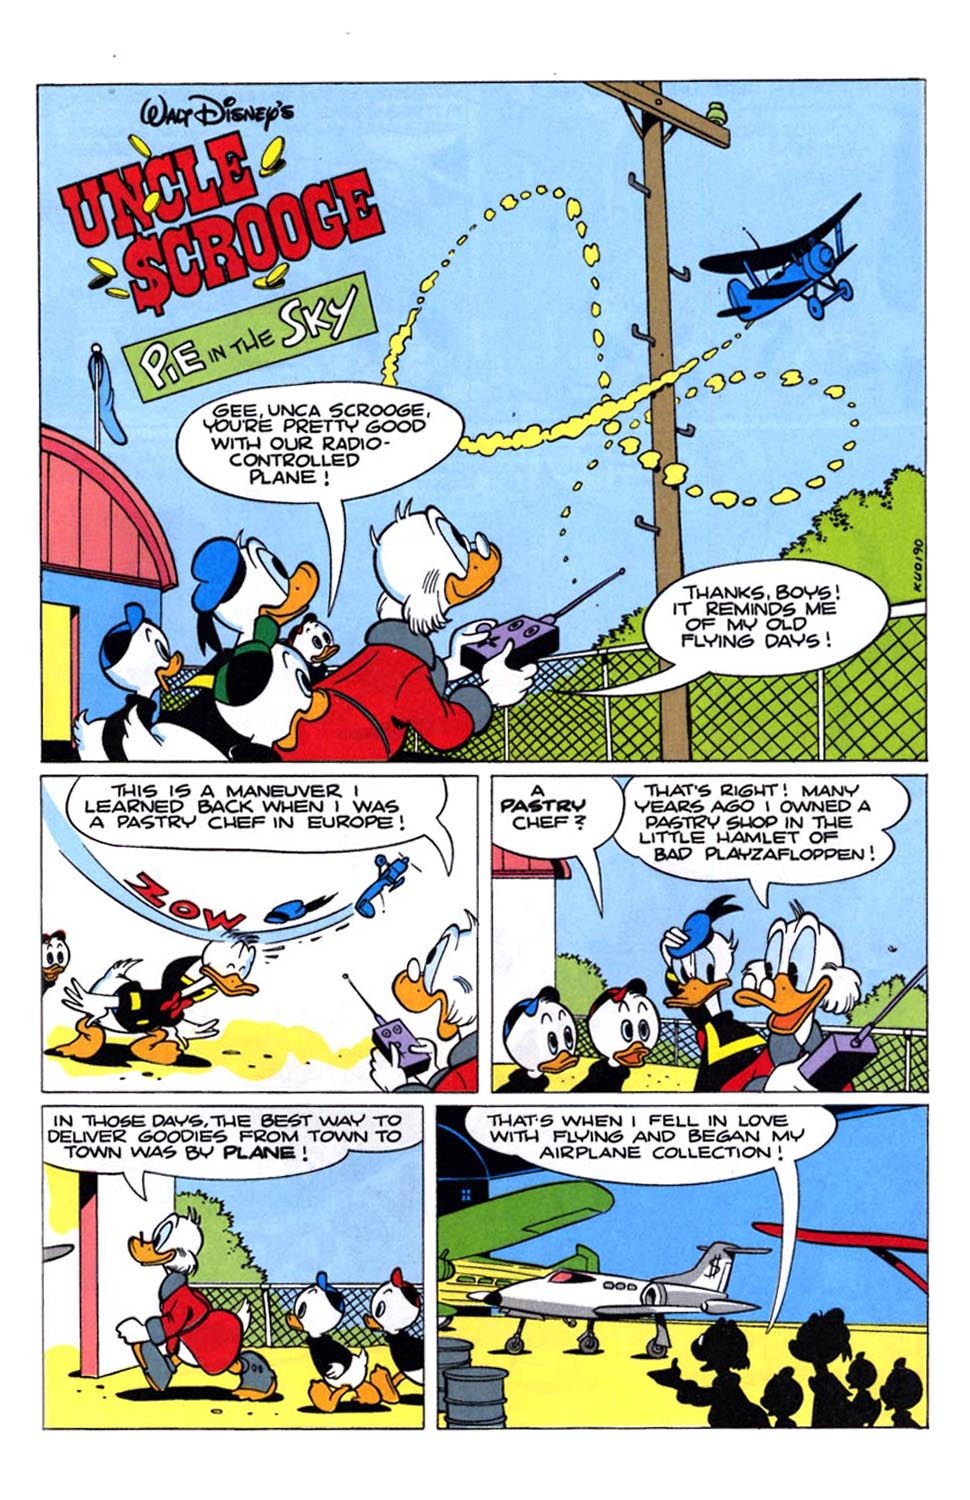 inefree.com/uncle-scrooge #162 - English 3